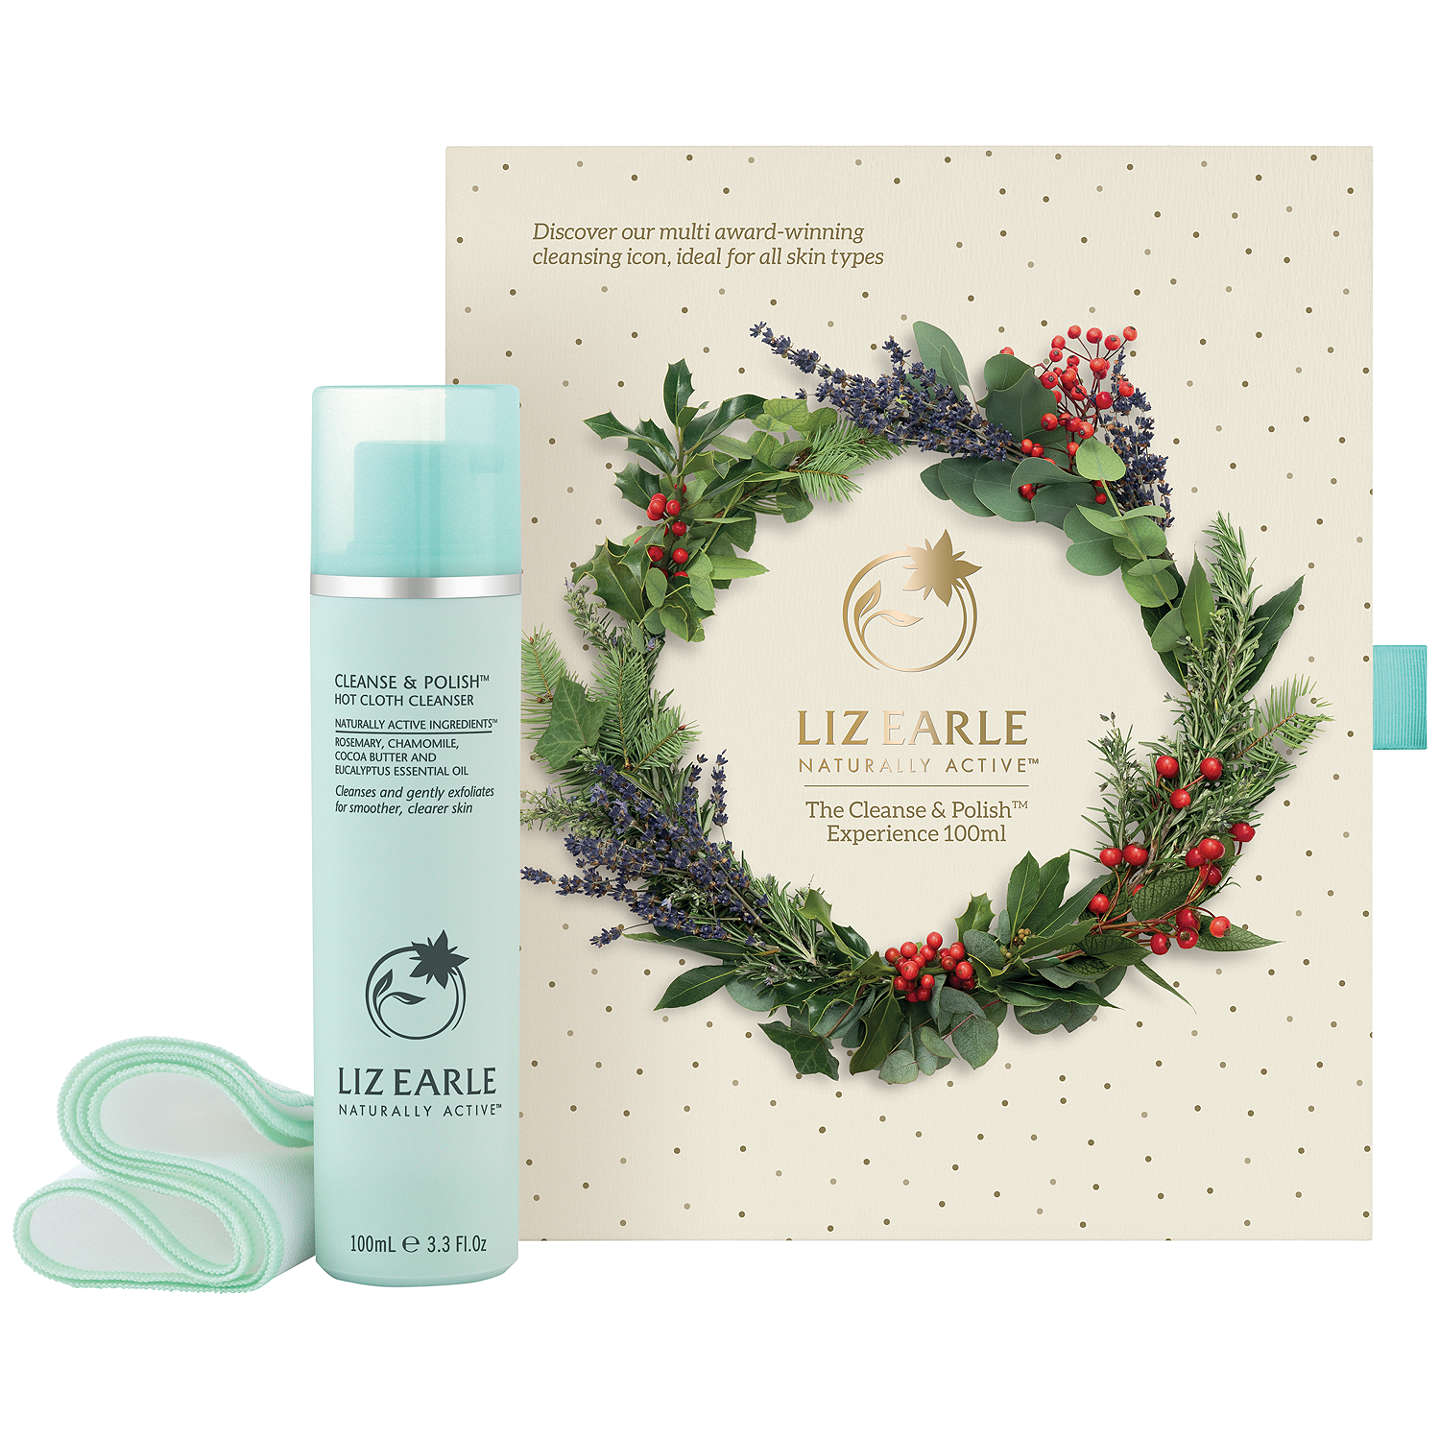 BuyLiz Earle The Cleanse & Polish™ Experience 100ml Skincare Gift Set Online at johnlewis.com